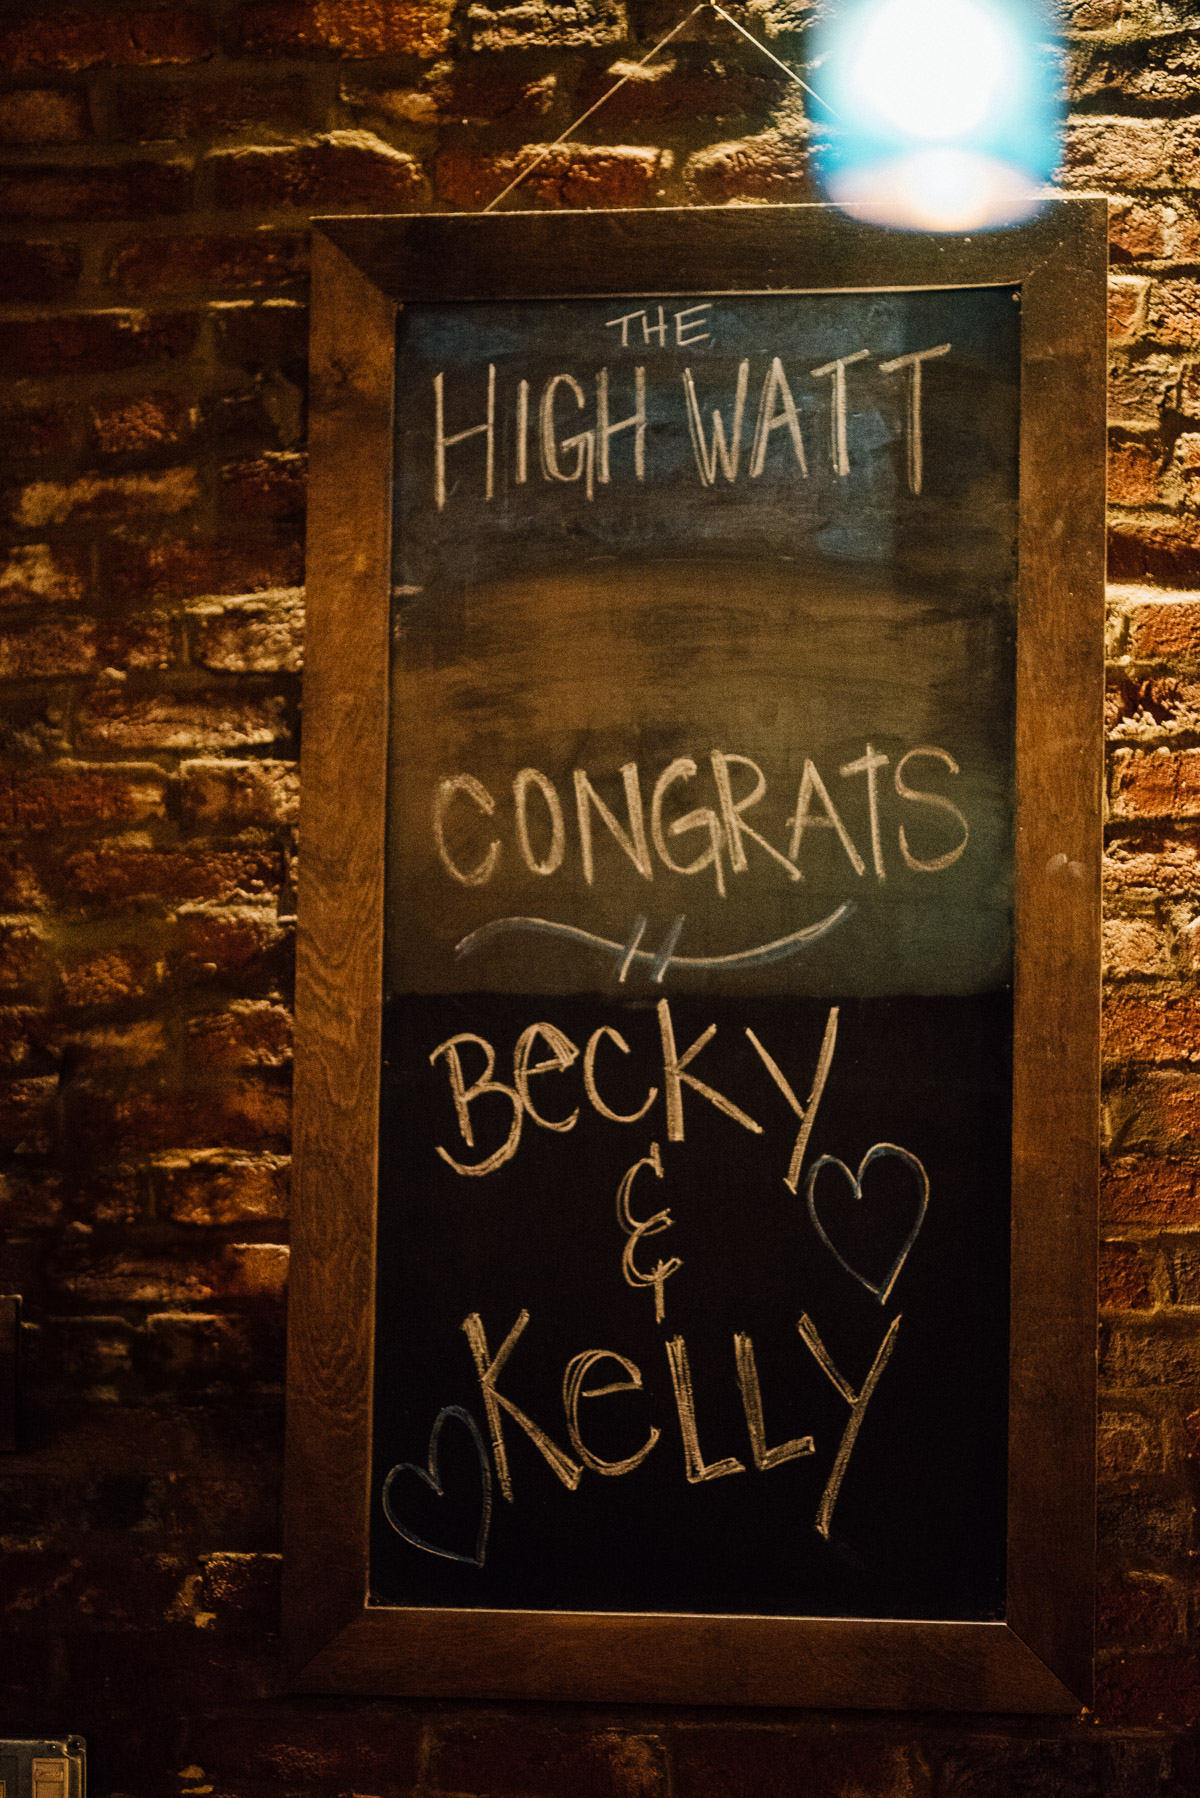 highwatt-congrats Becky and Kelly | Intimate Backyard Wedding